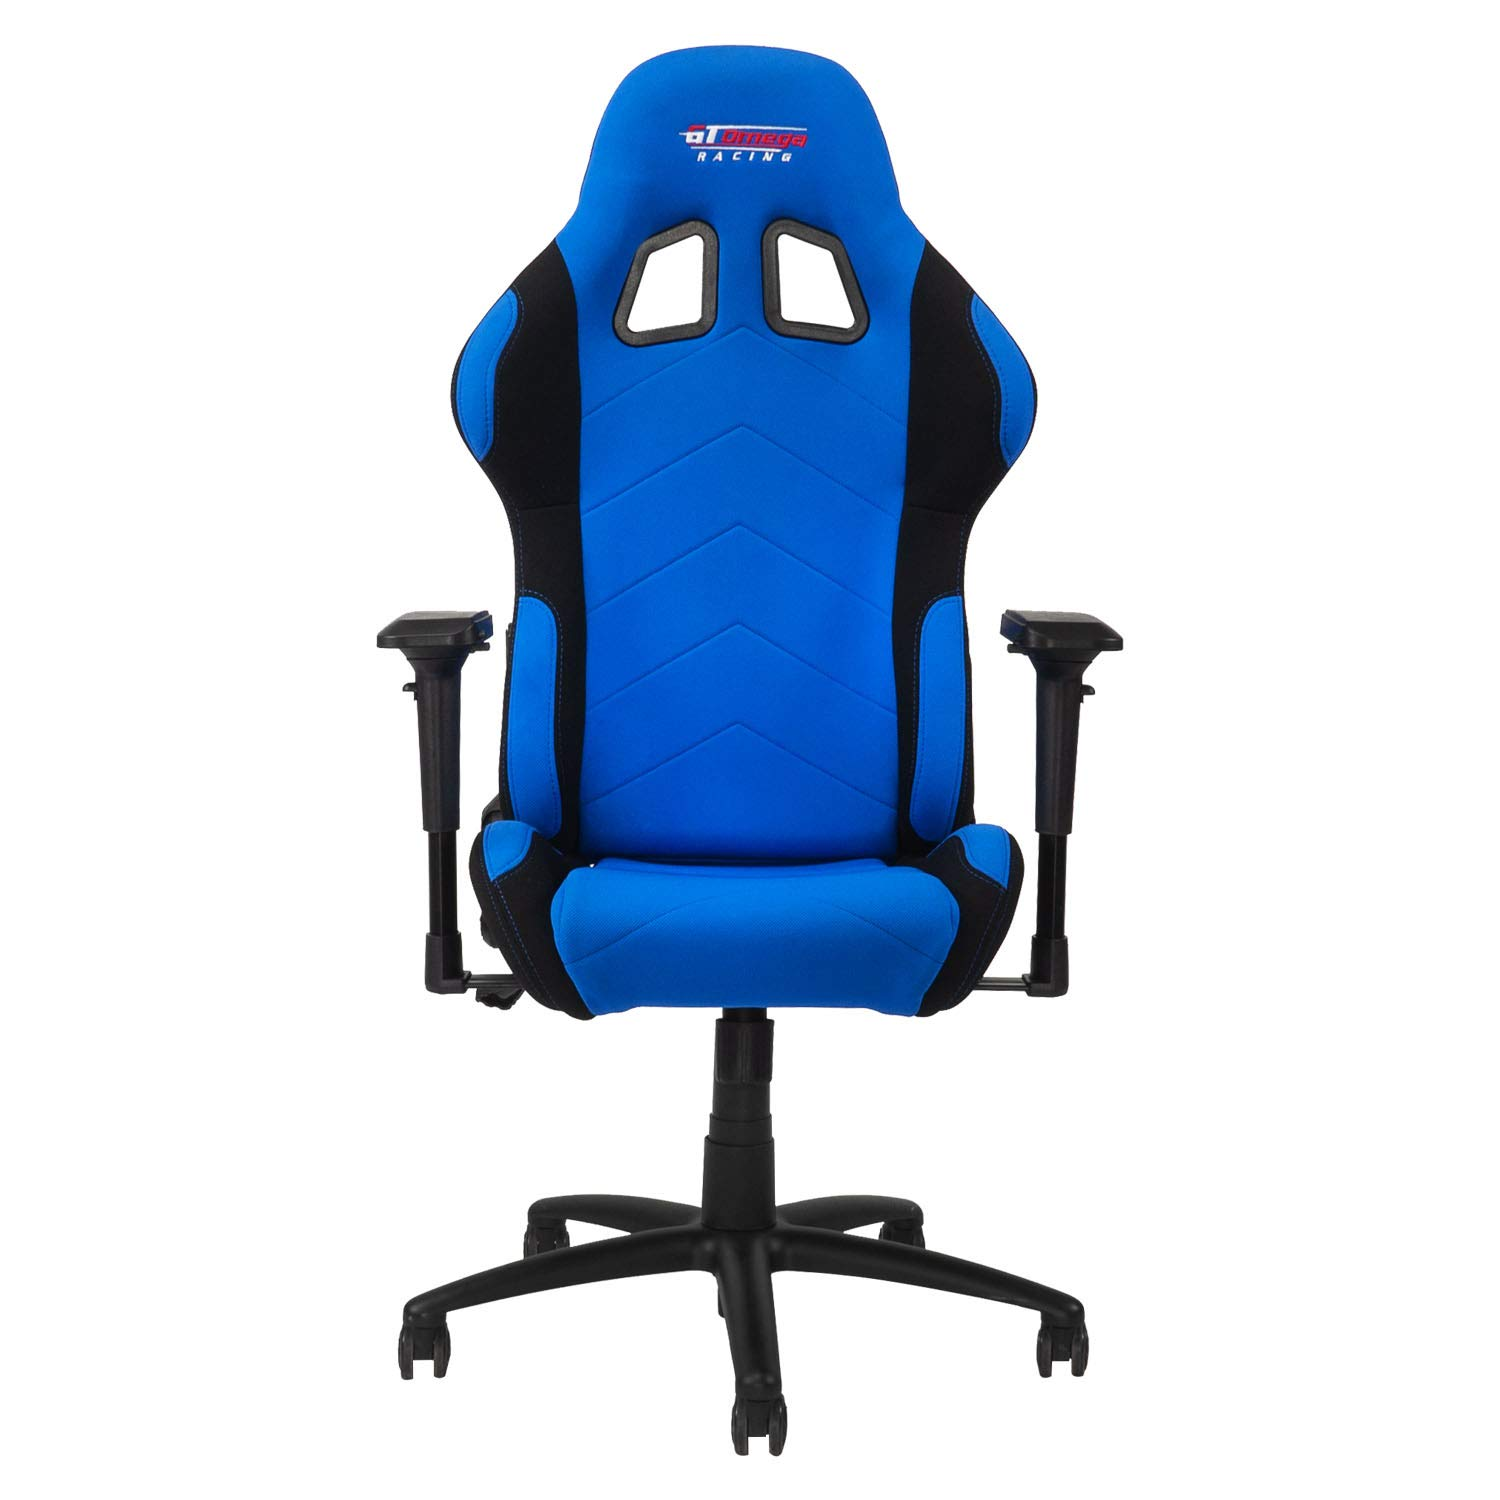 GT Omega PRO Racing Fabric Gaming Chair with Lumbar Support – Breathable Ergonomic Office Chair with 4D Adjustable Armrest Recliner – Esport Seat for Ultimate Gaming Experience – Blue Next Black